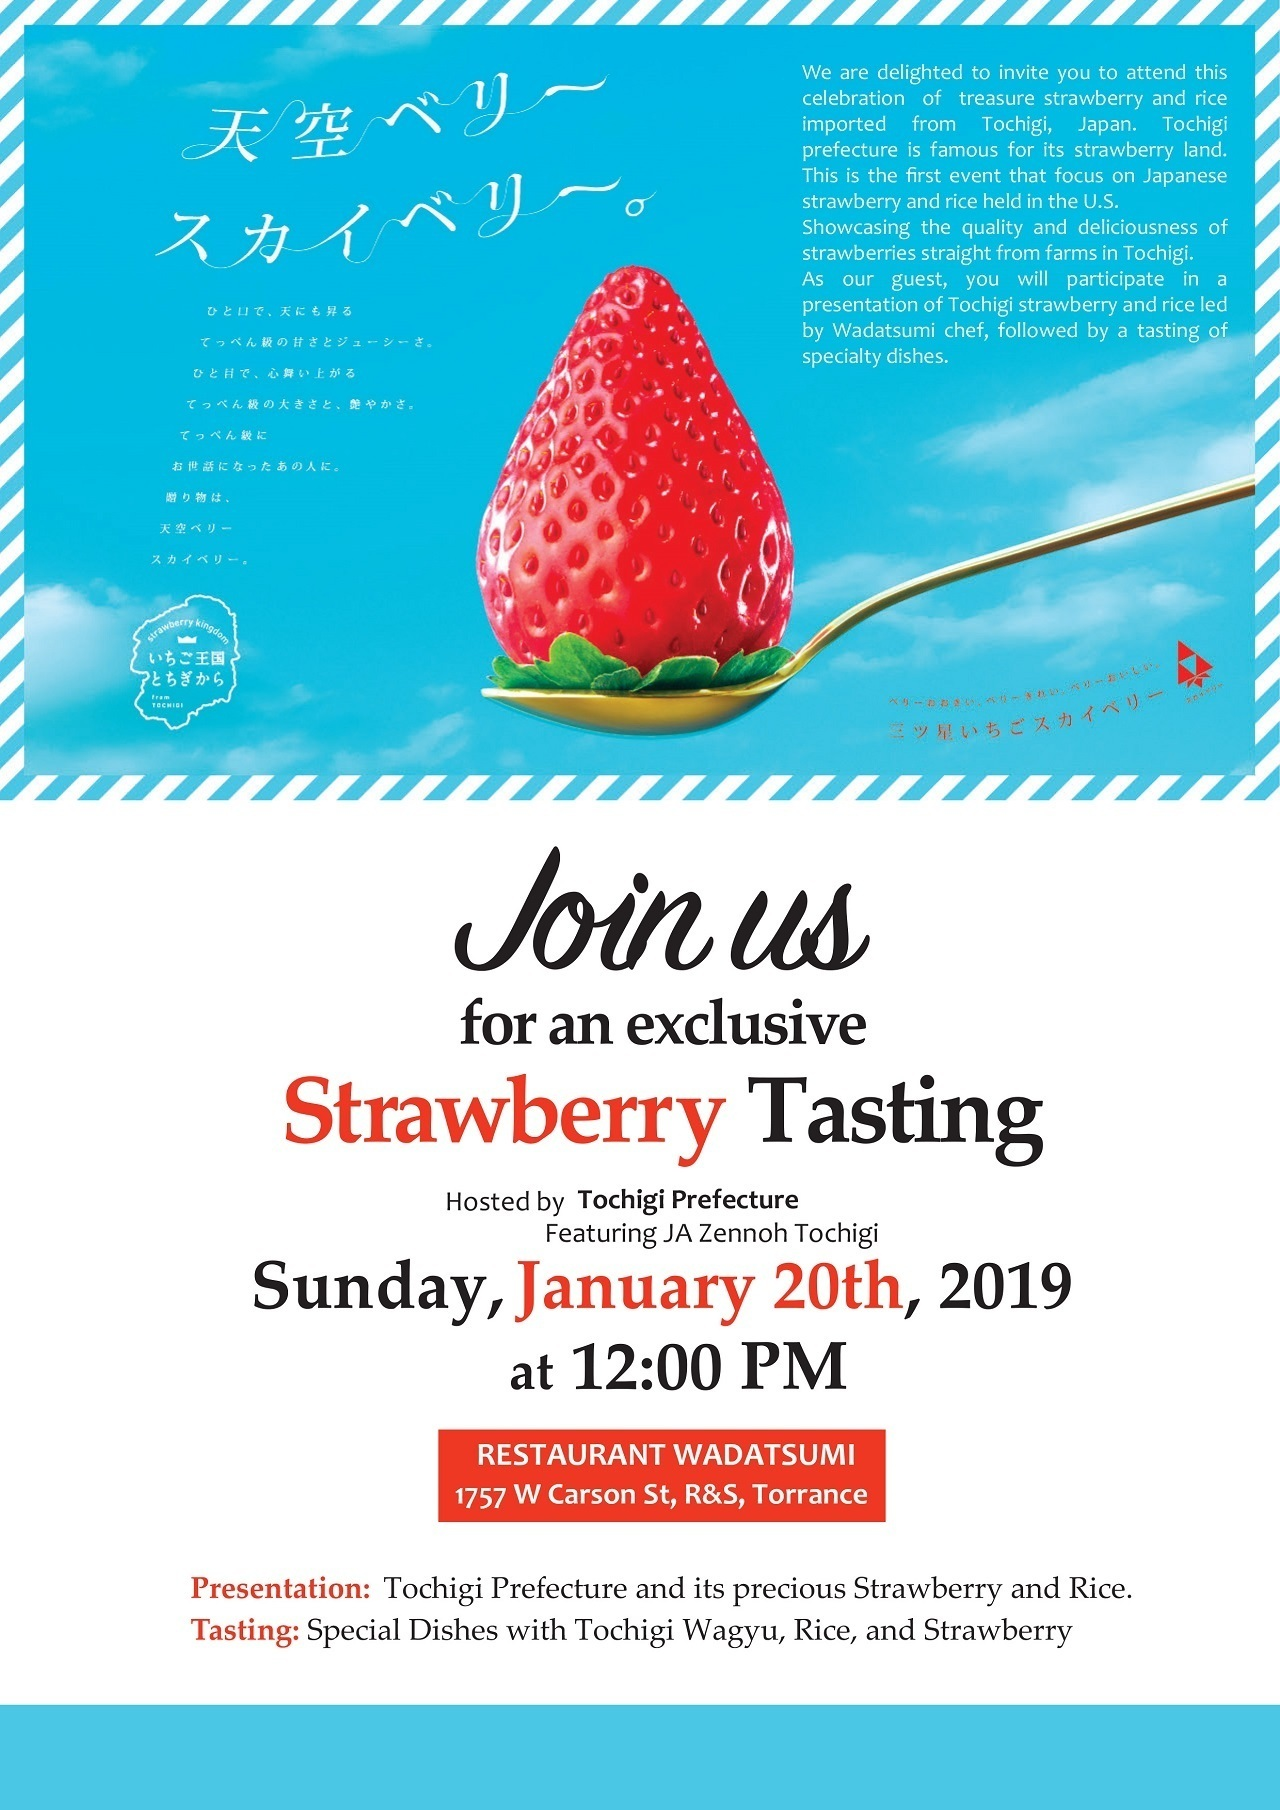 Strawberry Tasting Event Hosted by Tochigi Prefecture Japan wadatsumi wagyu